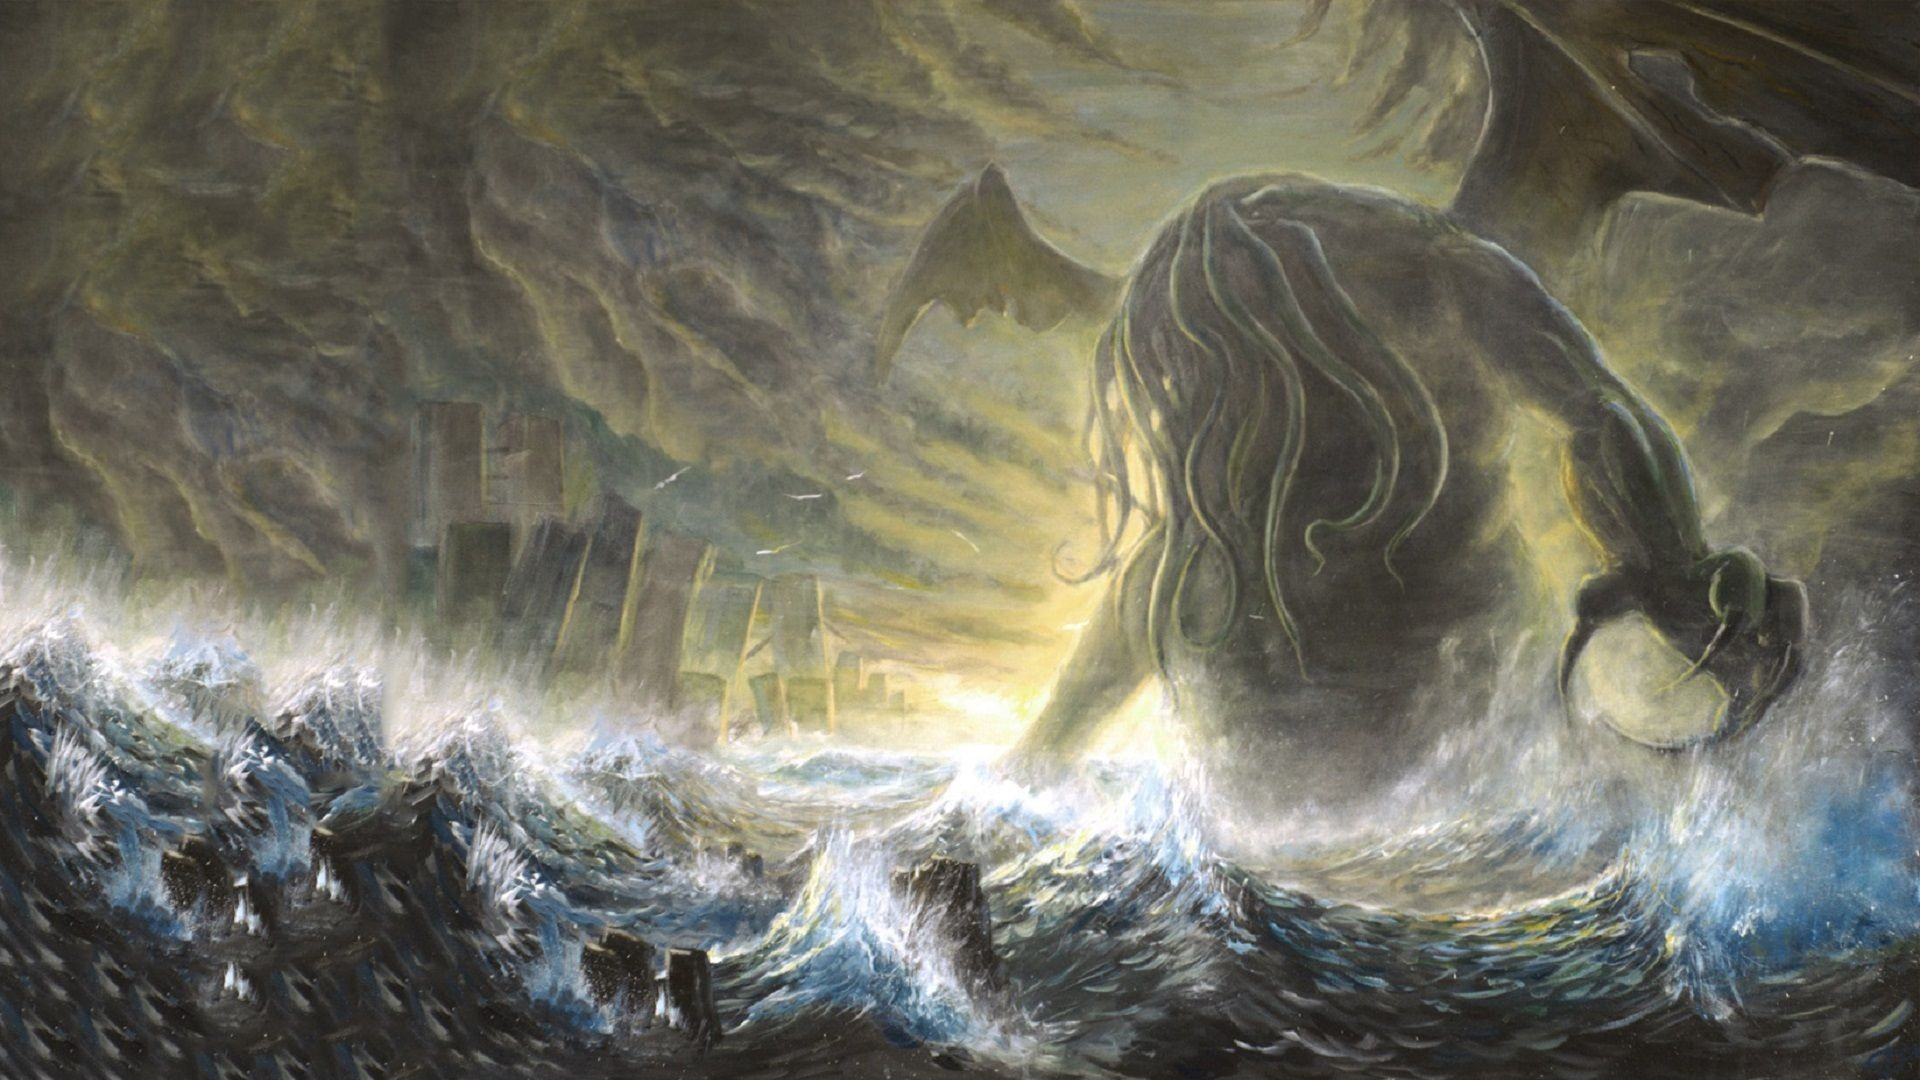 Res: 1920x1080, HD Cthulhu Wallpapers and Photos,  px – By Marcie Weir for mobile  and desktop